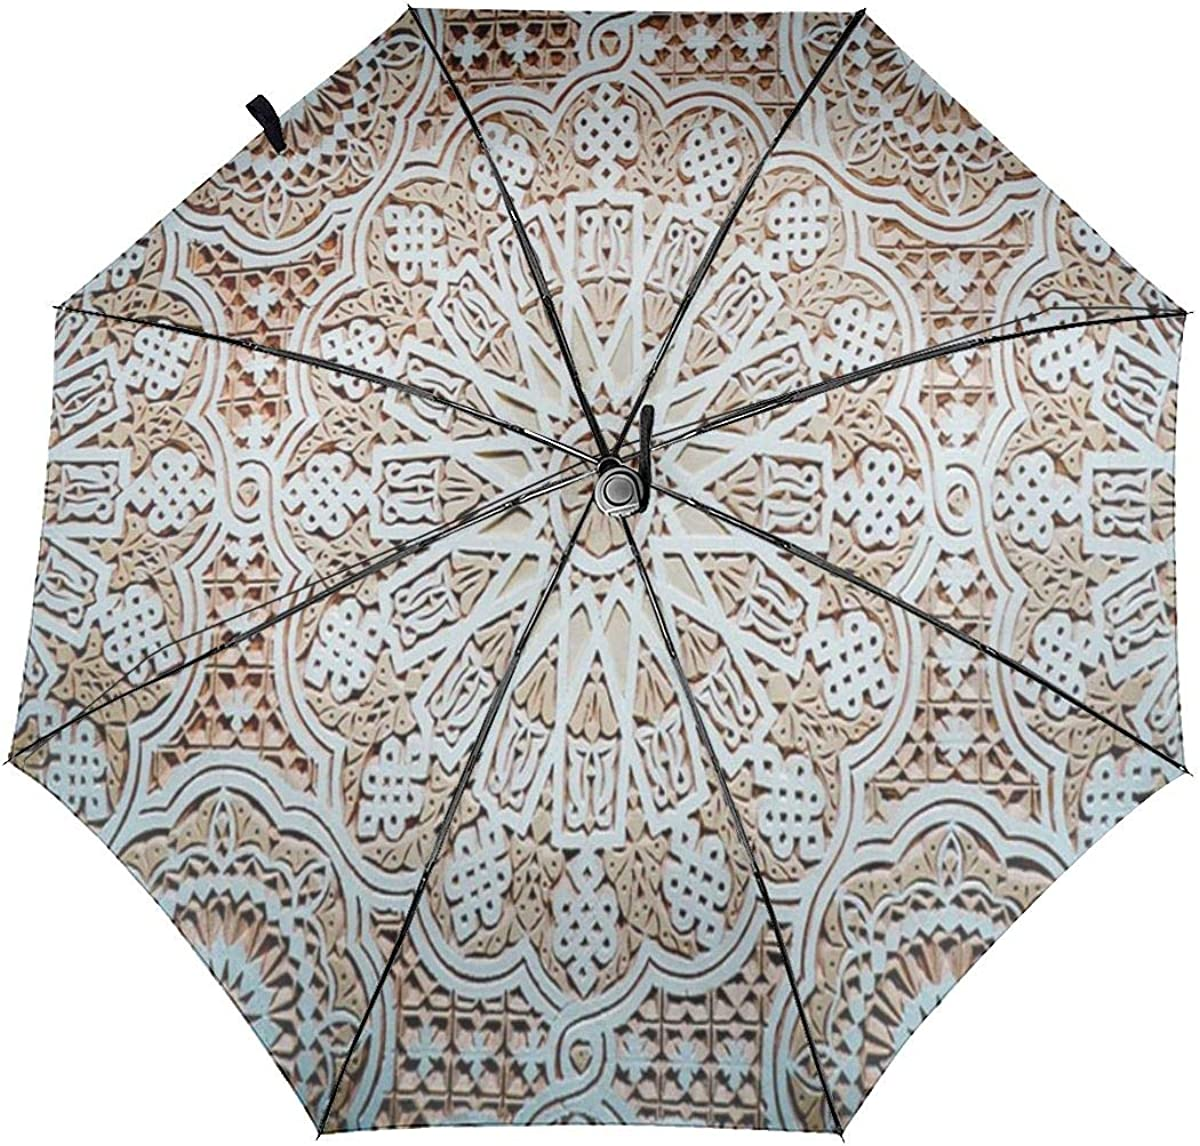 Mancharo Stucco Ceiling Compact Travel Umbrella Windproof Reinforced Canopy 8 Ribs Umbrella Auto Open And Close Button Customized